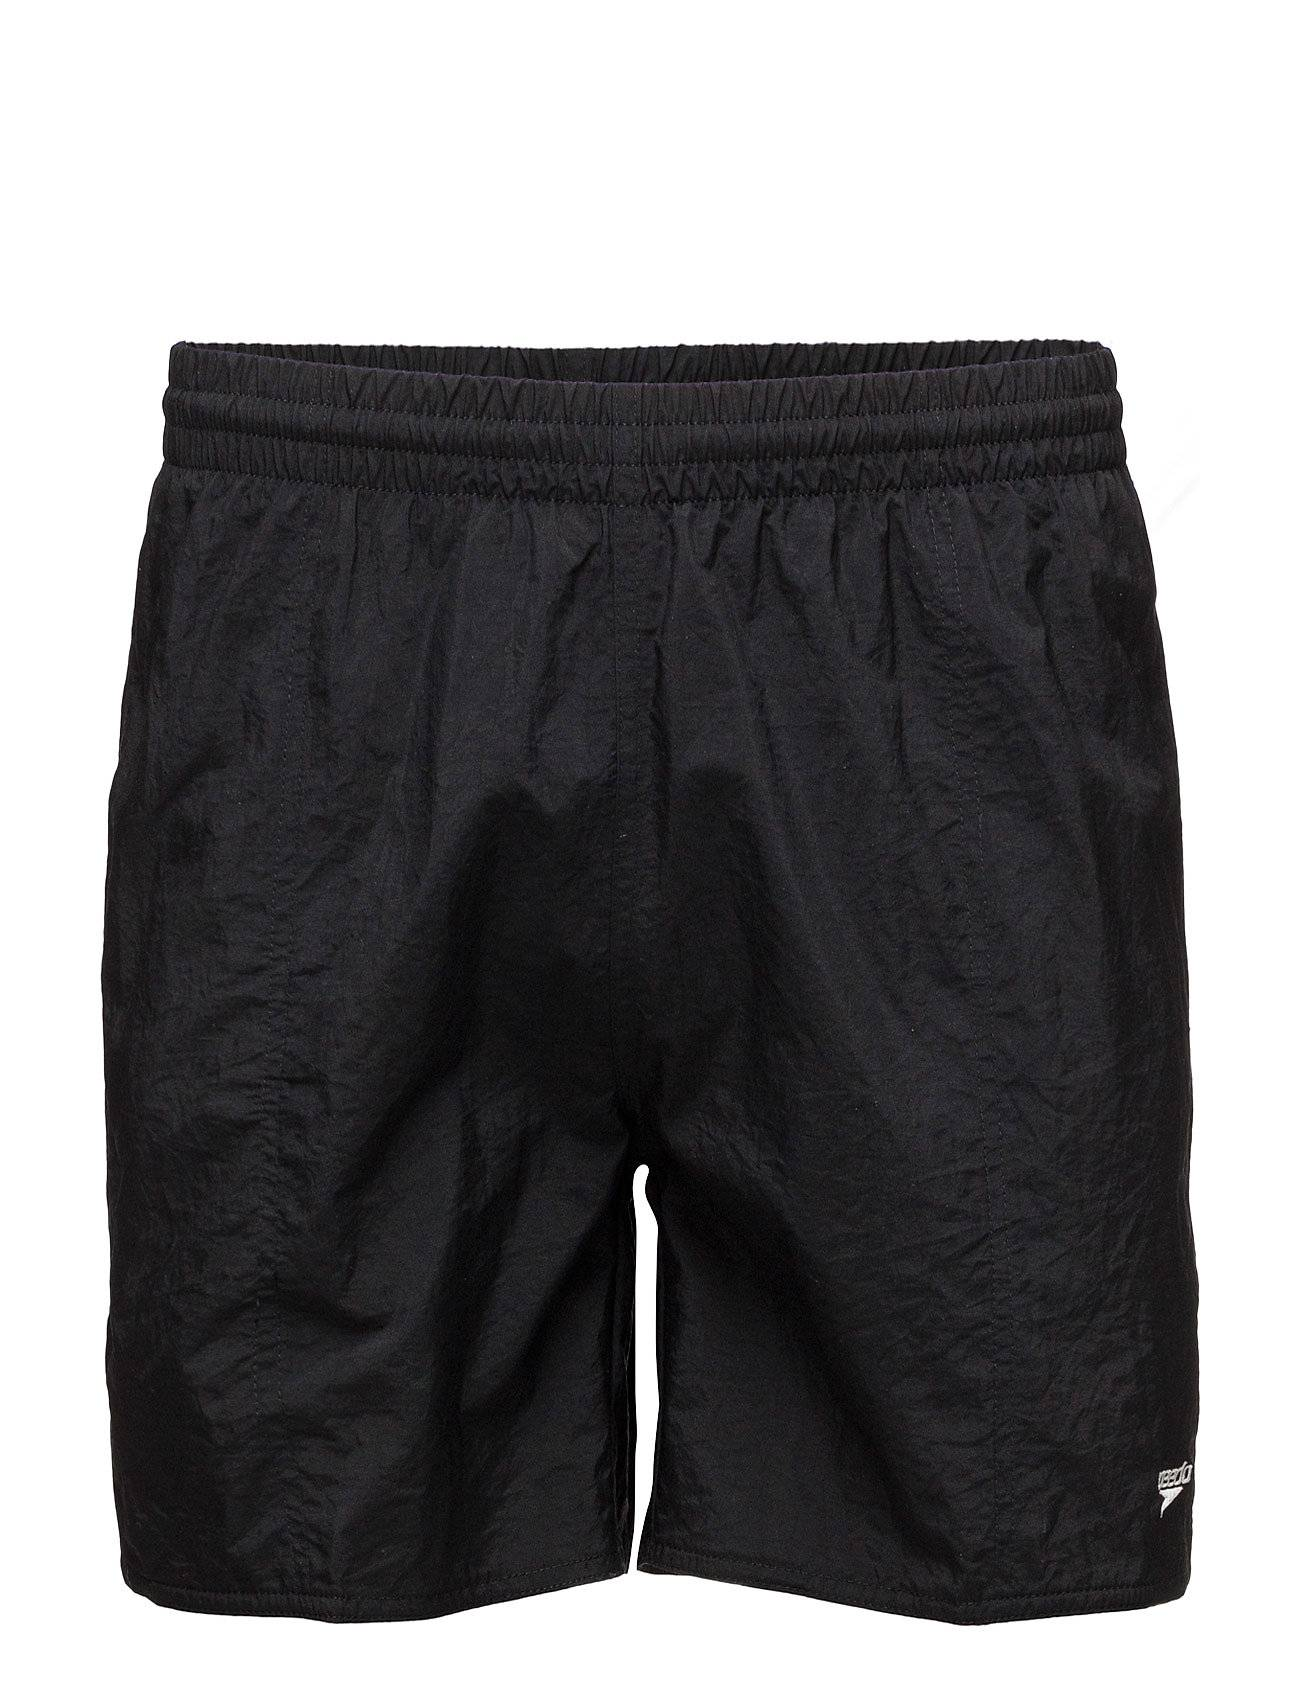 Speedo Solid Leisure 16 Wsht Am, Black Xs